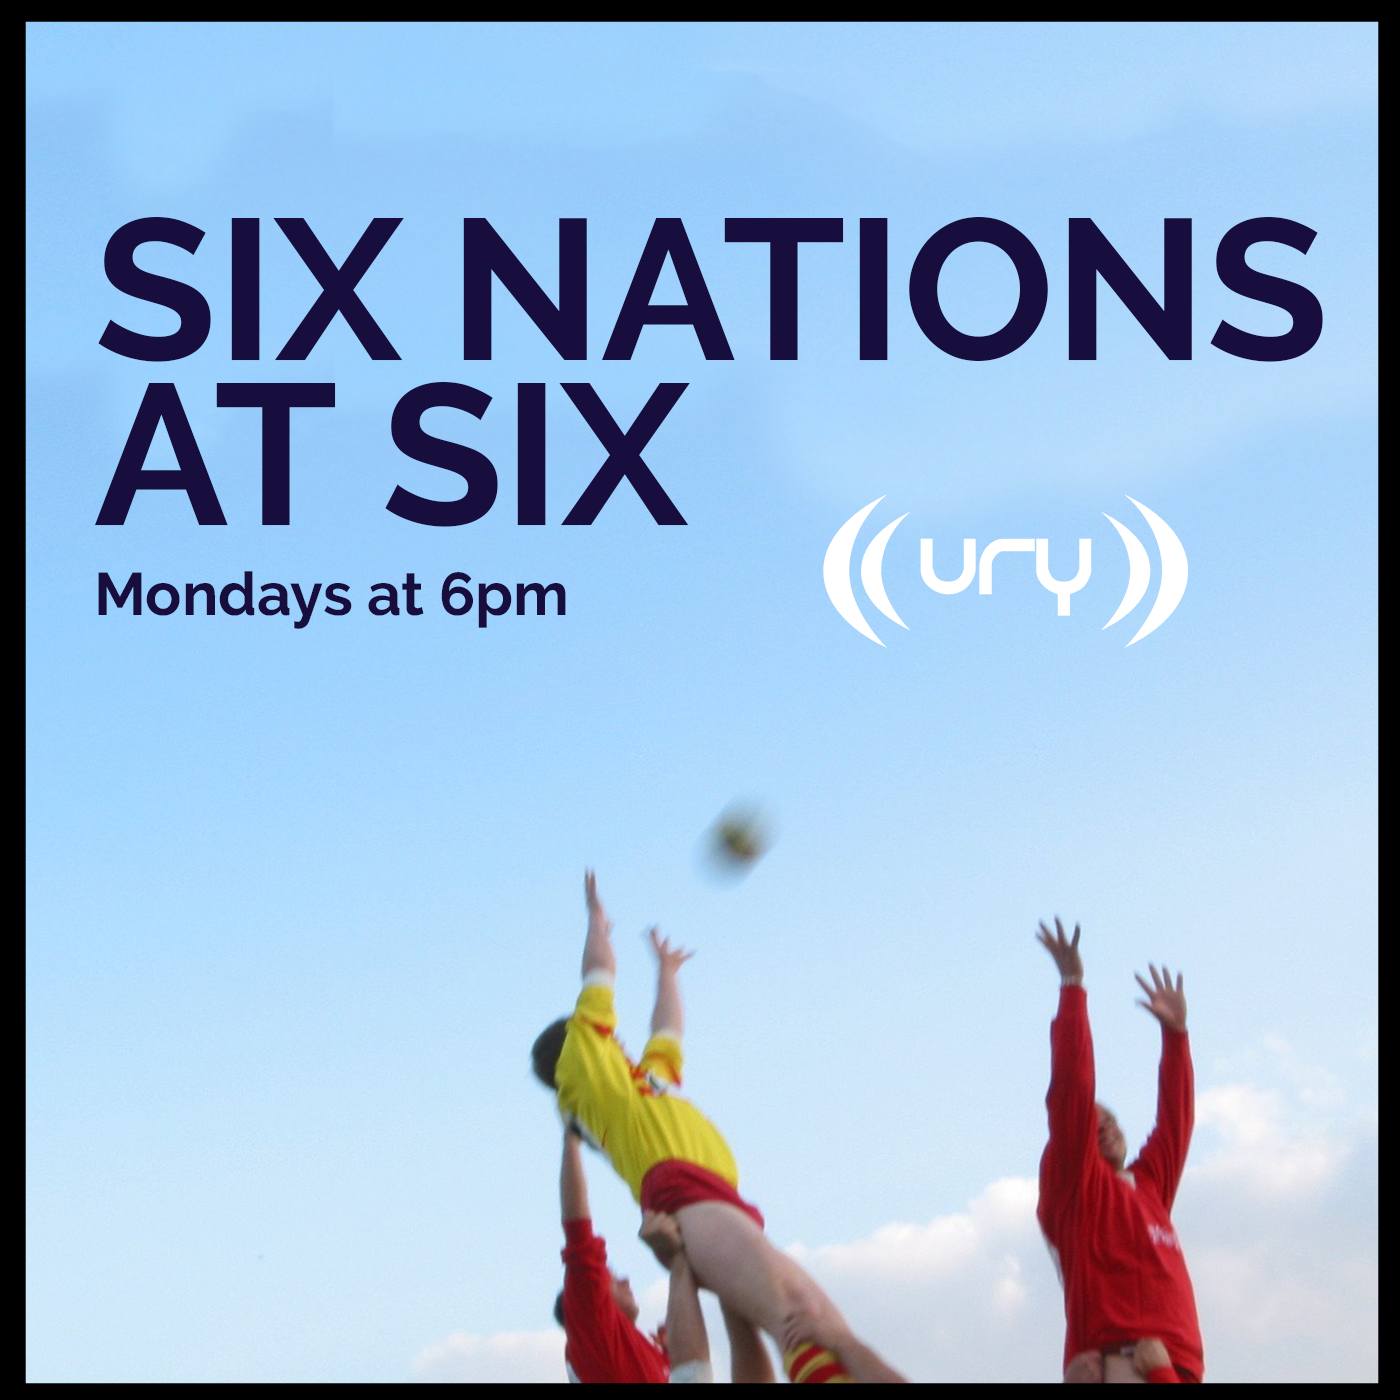 Six Nations at Six logo.